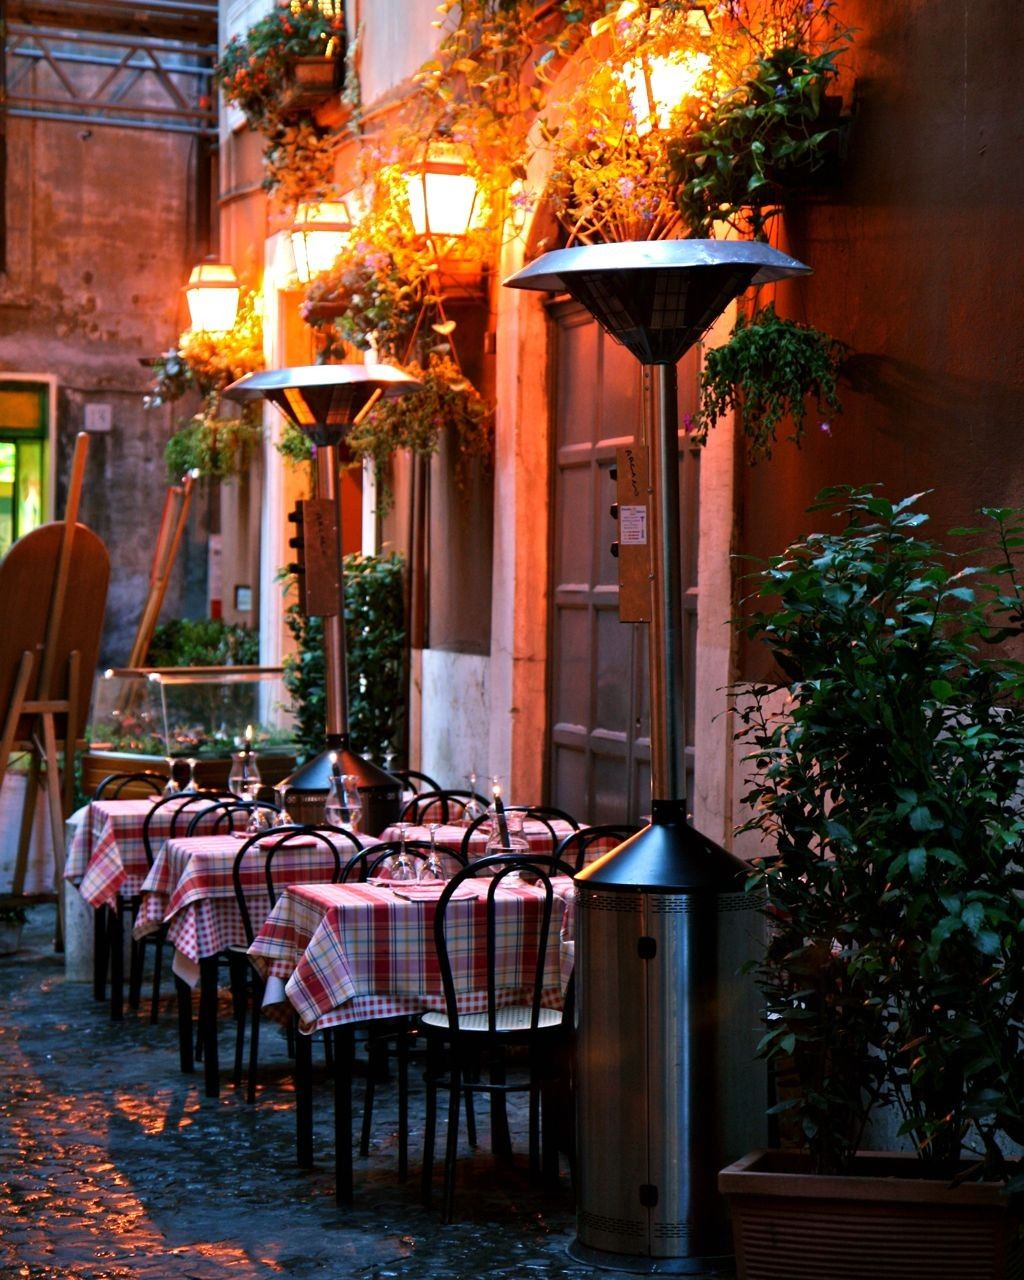 Italian Restaurant Candlelight Dinner Sidewalk Dining In Rome Italy Photo Print Trattoria Photograph Red Date Night 30 00 Via Etsy